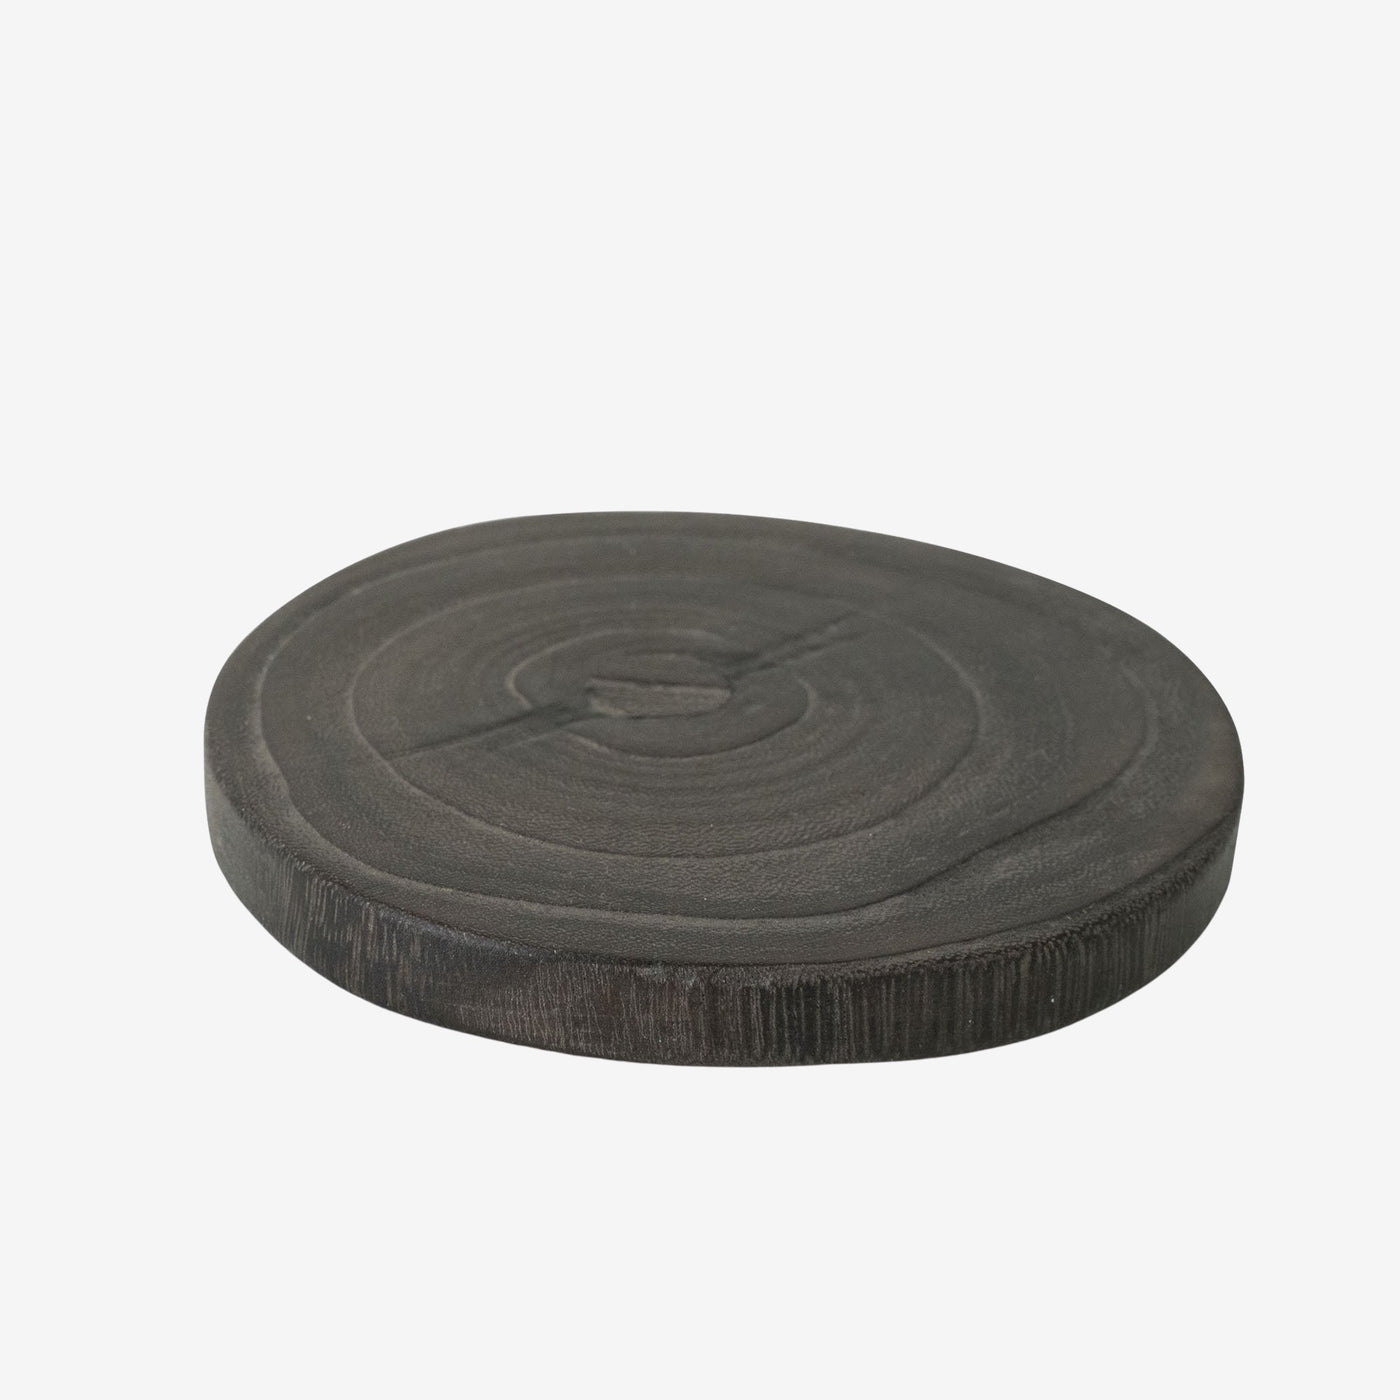 Paulownia Slices Coasters, Set / 4